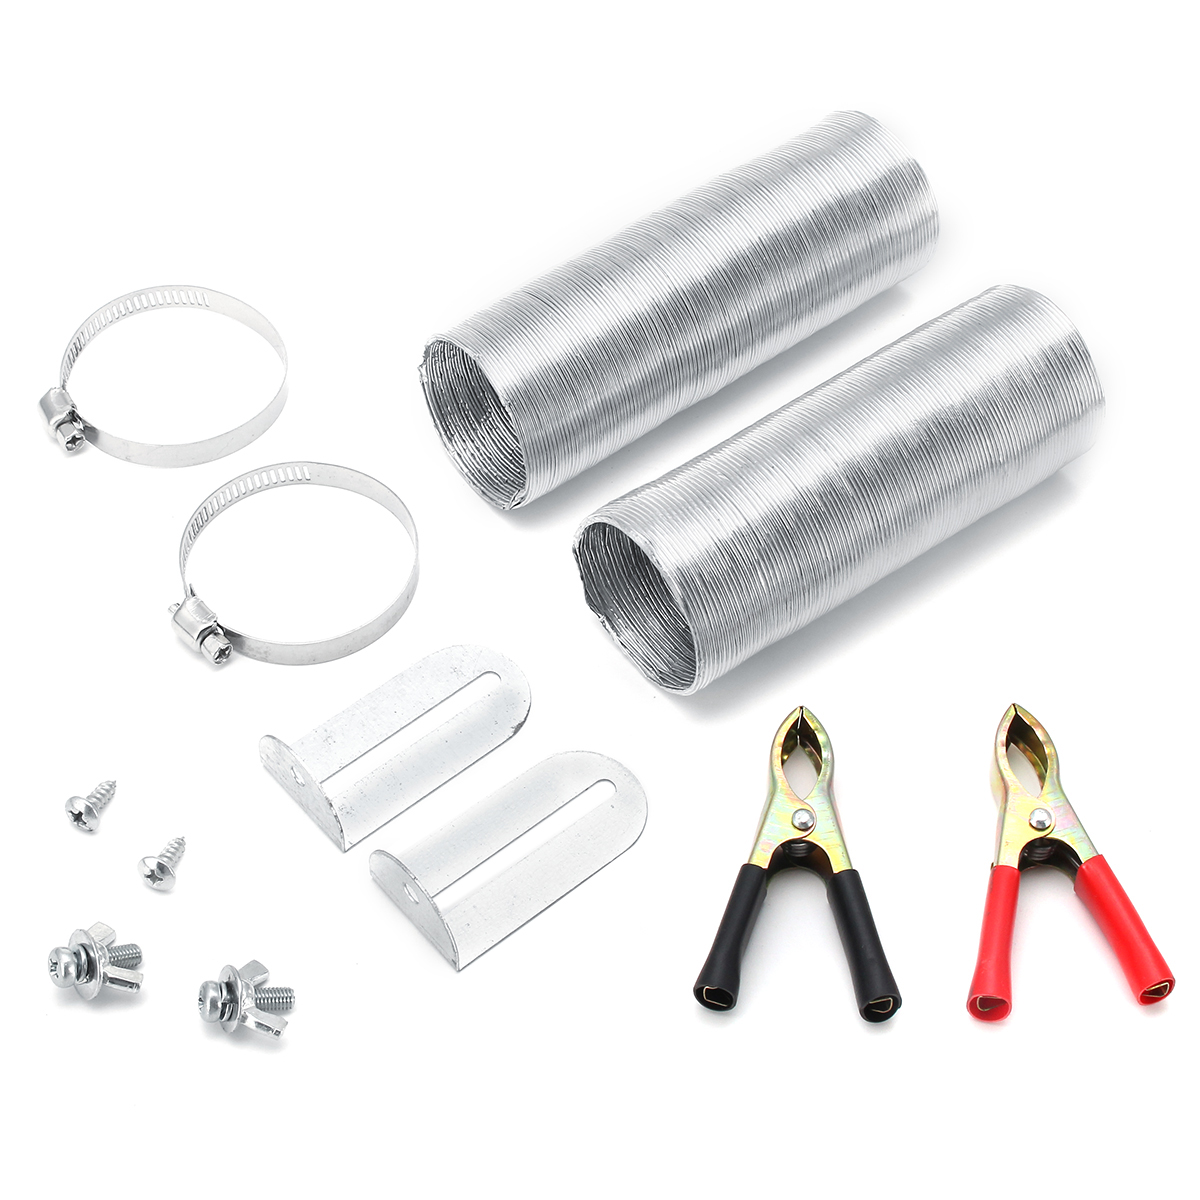 Air Supply Pipe Bracket Pipe Strap Clamps Screws For Defroster Car Heater